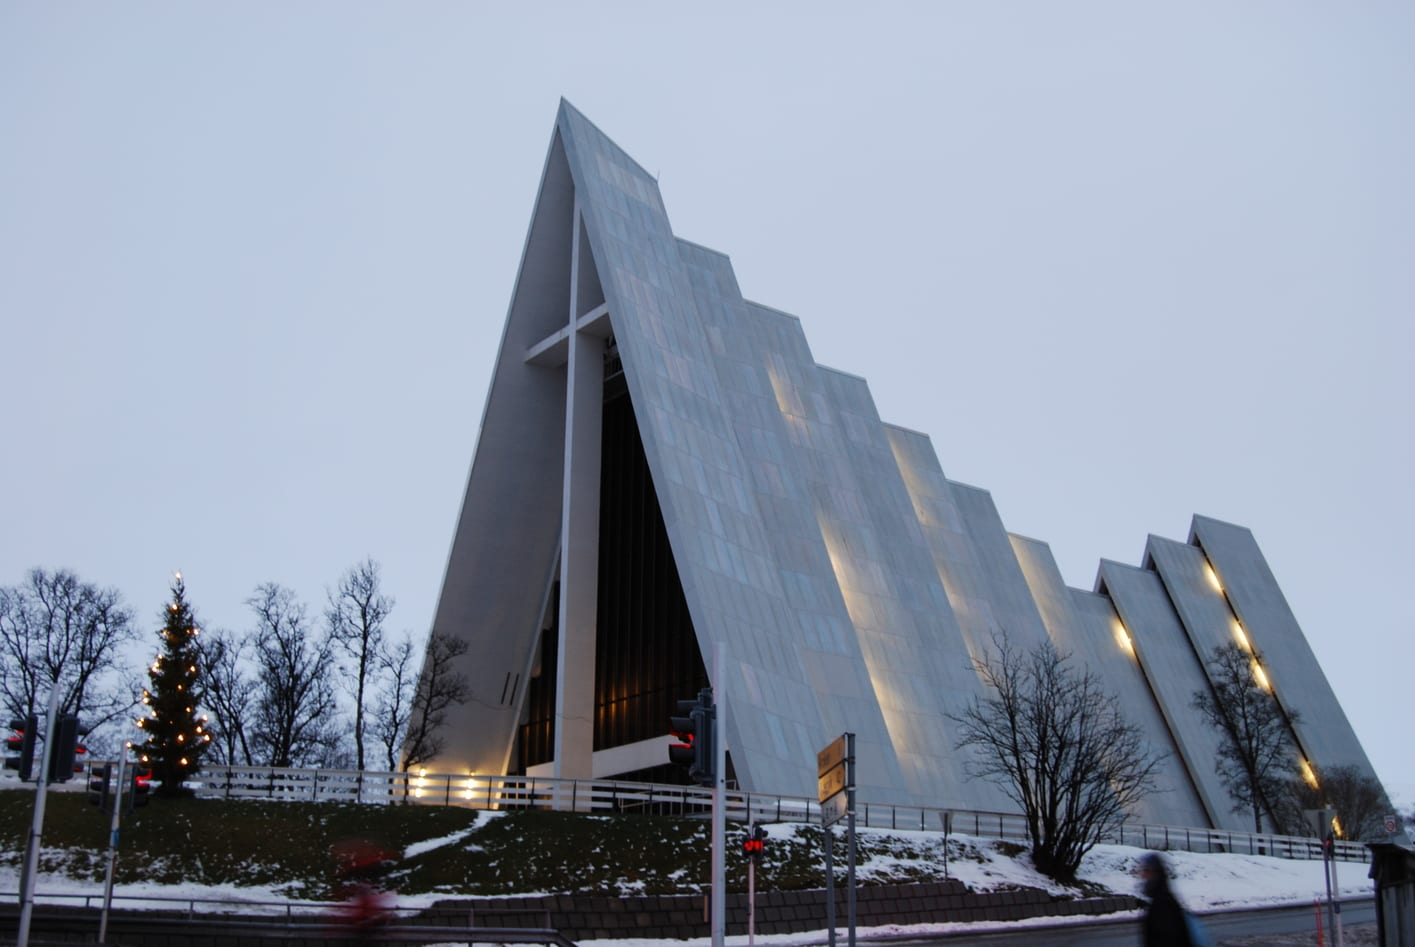 The Arctic Cathedral, a place to visit in Tromso, Norway